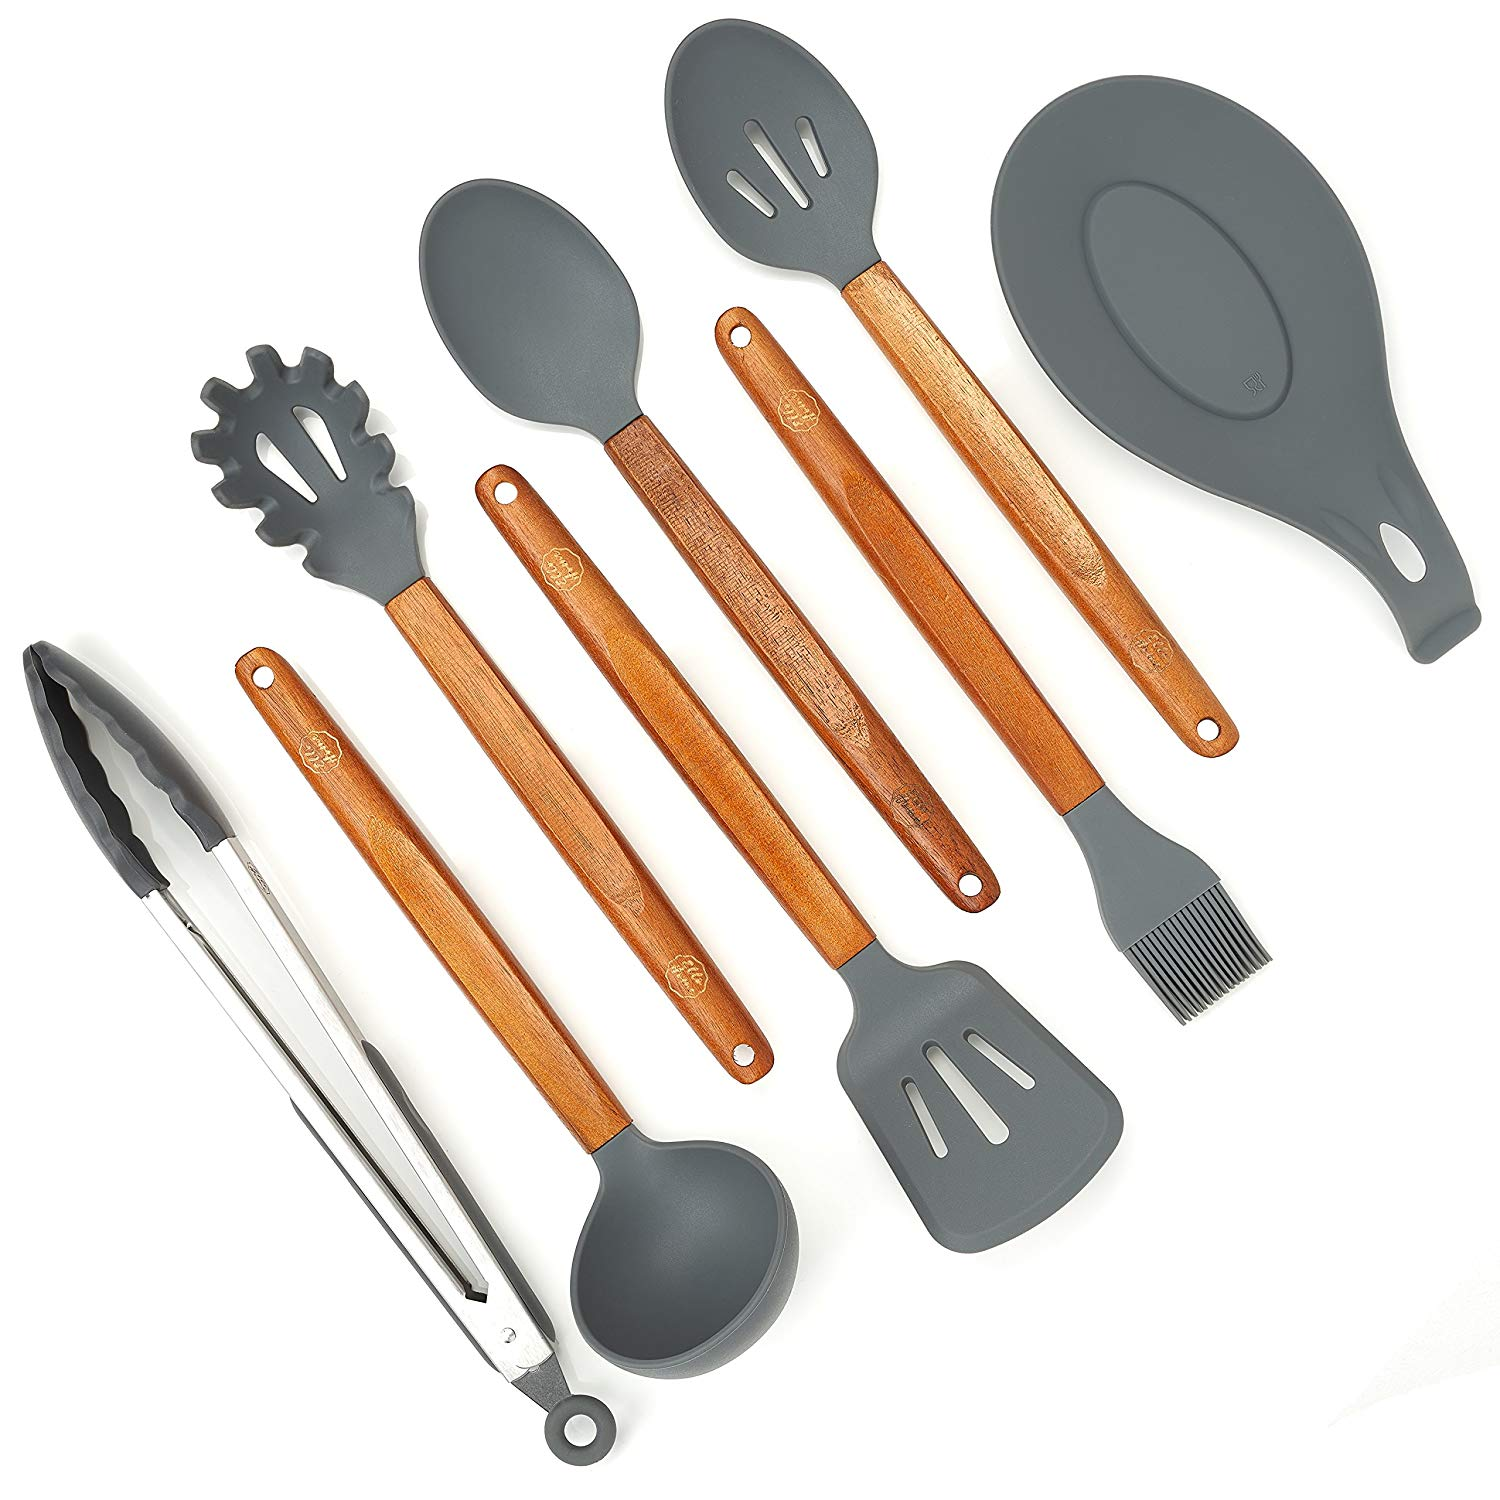 ELLO Home Silicone Utensil Set